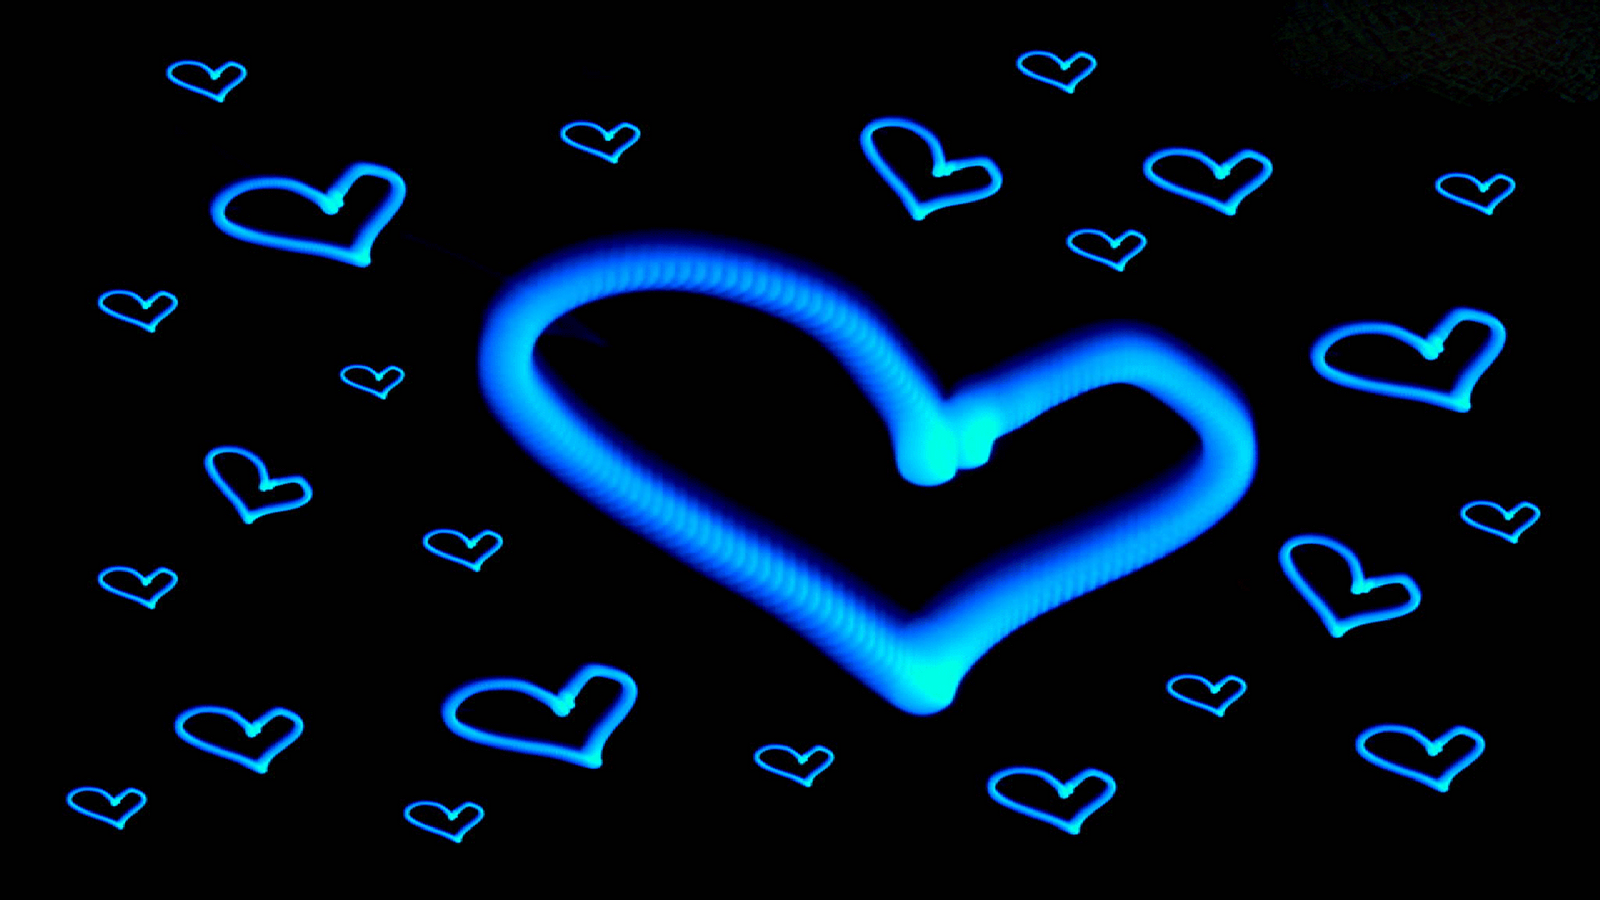 Best Fondos De Pantalla Hd Corazones Azules Image Collection